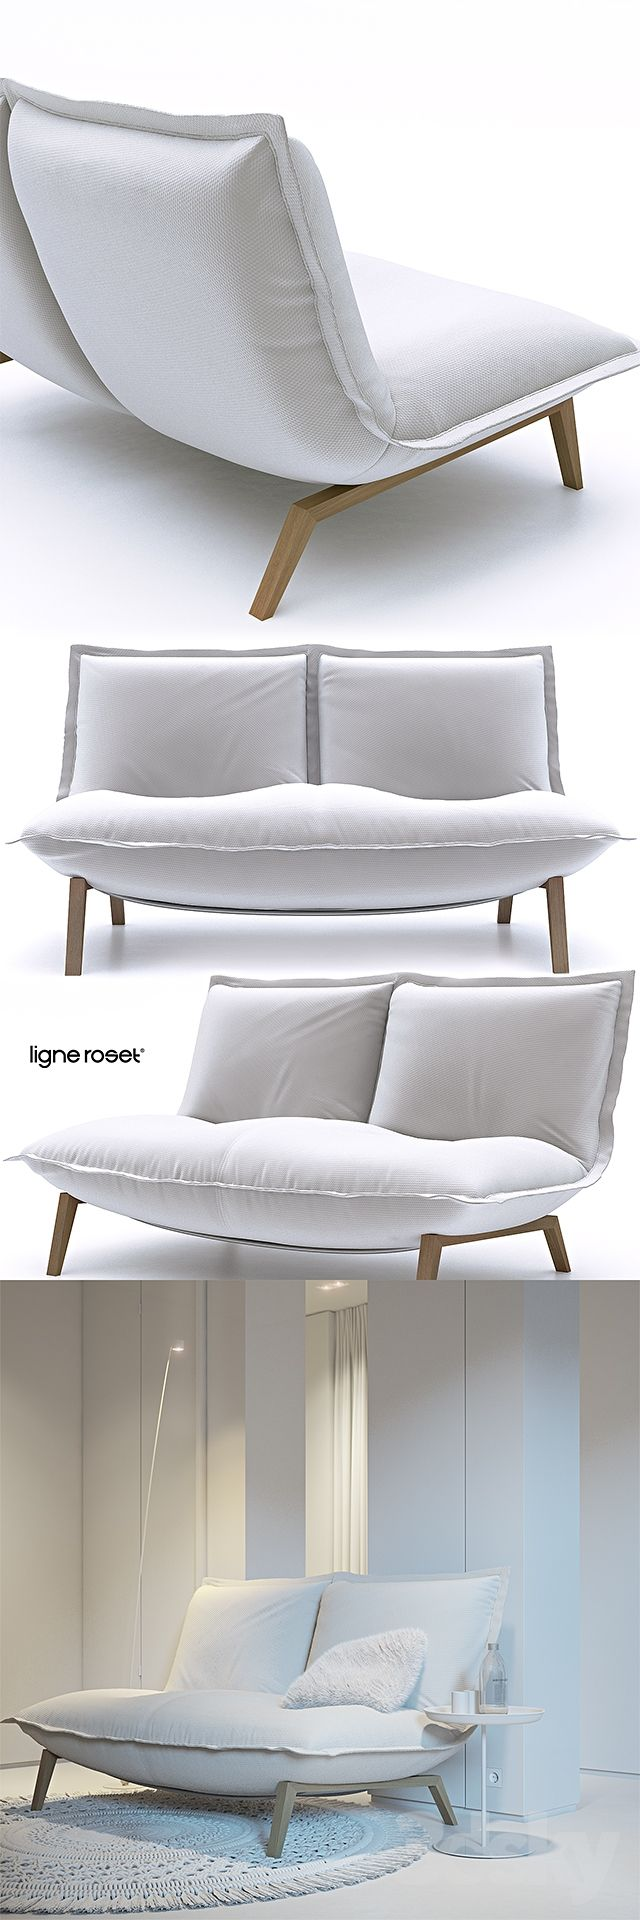 Island dining chair by ligne roset modern dining chairs los angeles - 3d Models Sofa Ligne Roset Calin Sofa Ligne Rosetupholstered Furniturechairssofasmodelsfacility